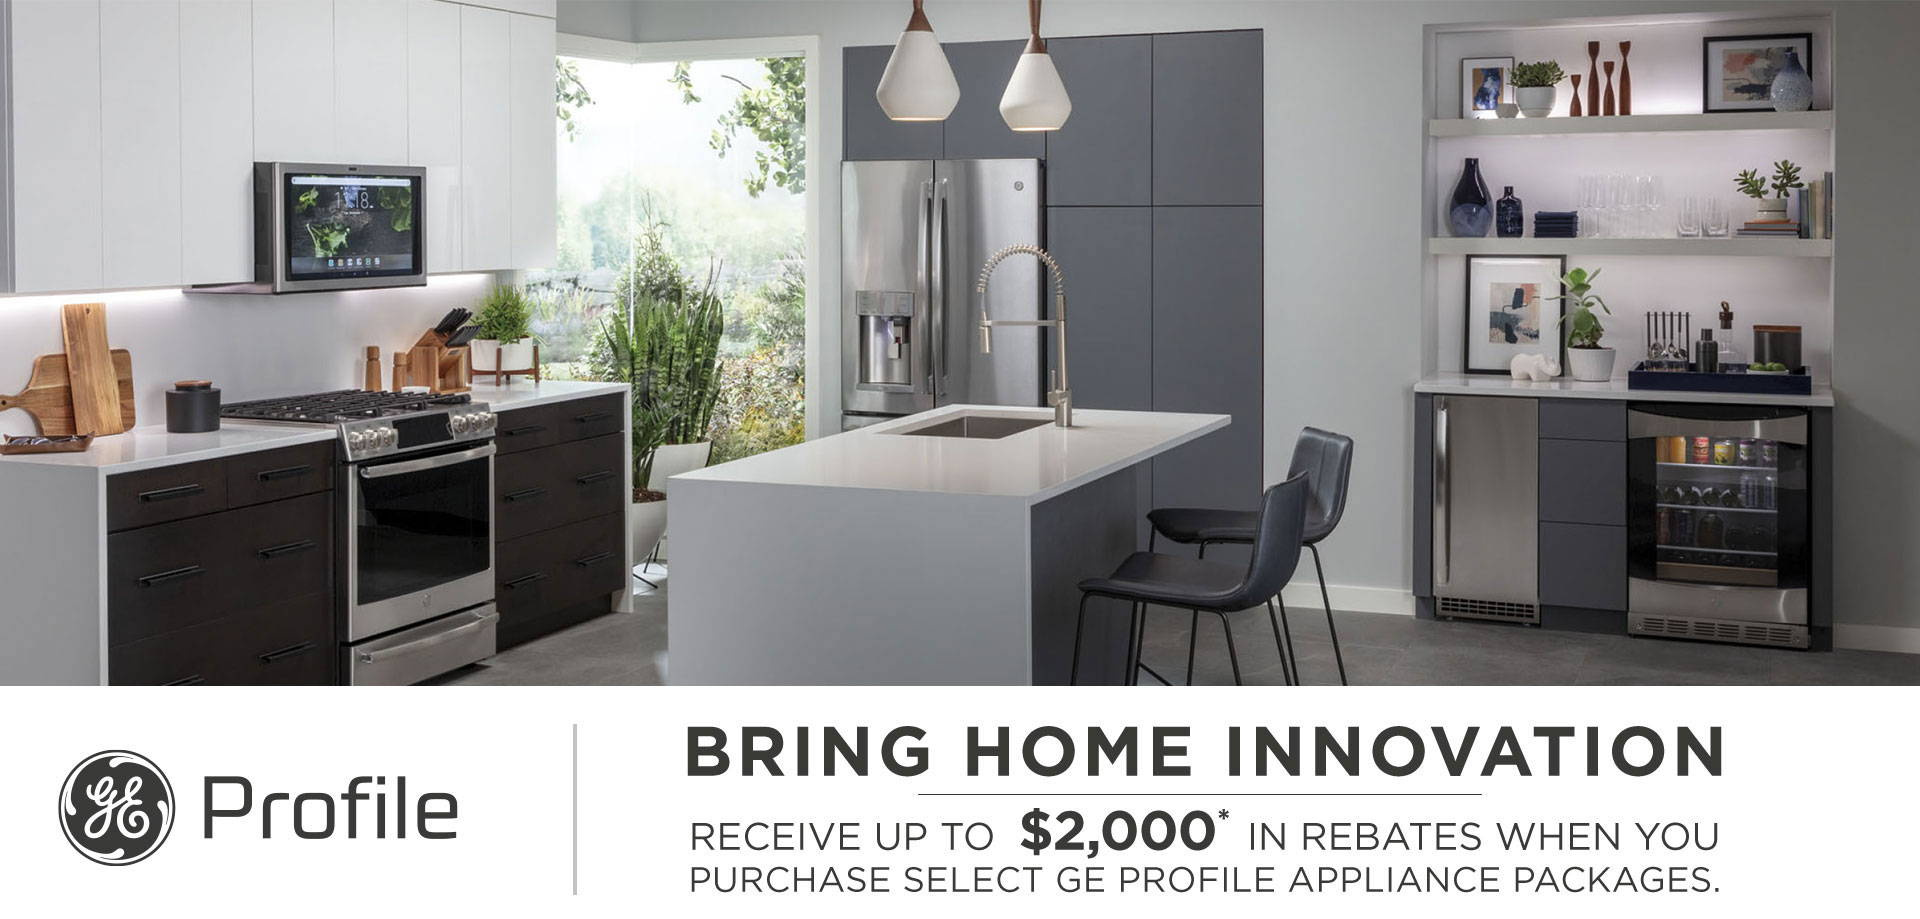 GE Profile - Bring home innovation - Receive up to $2000* in rebates when you purchase select GE Profile Appliance Packages.